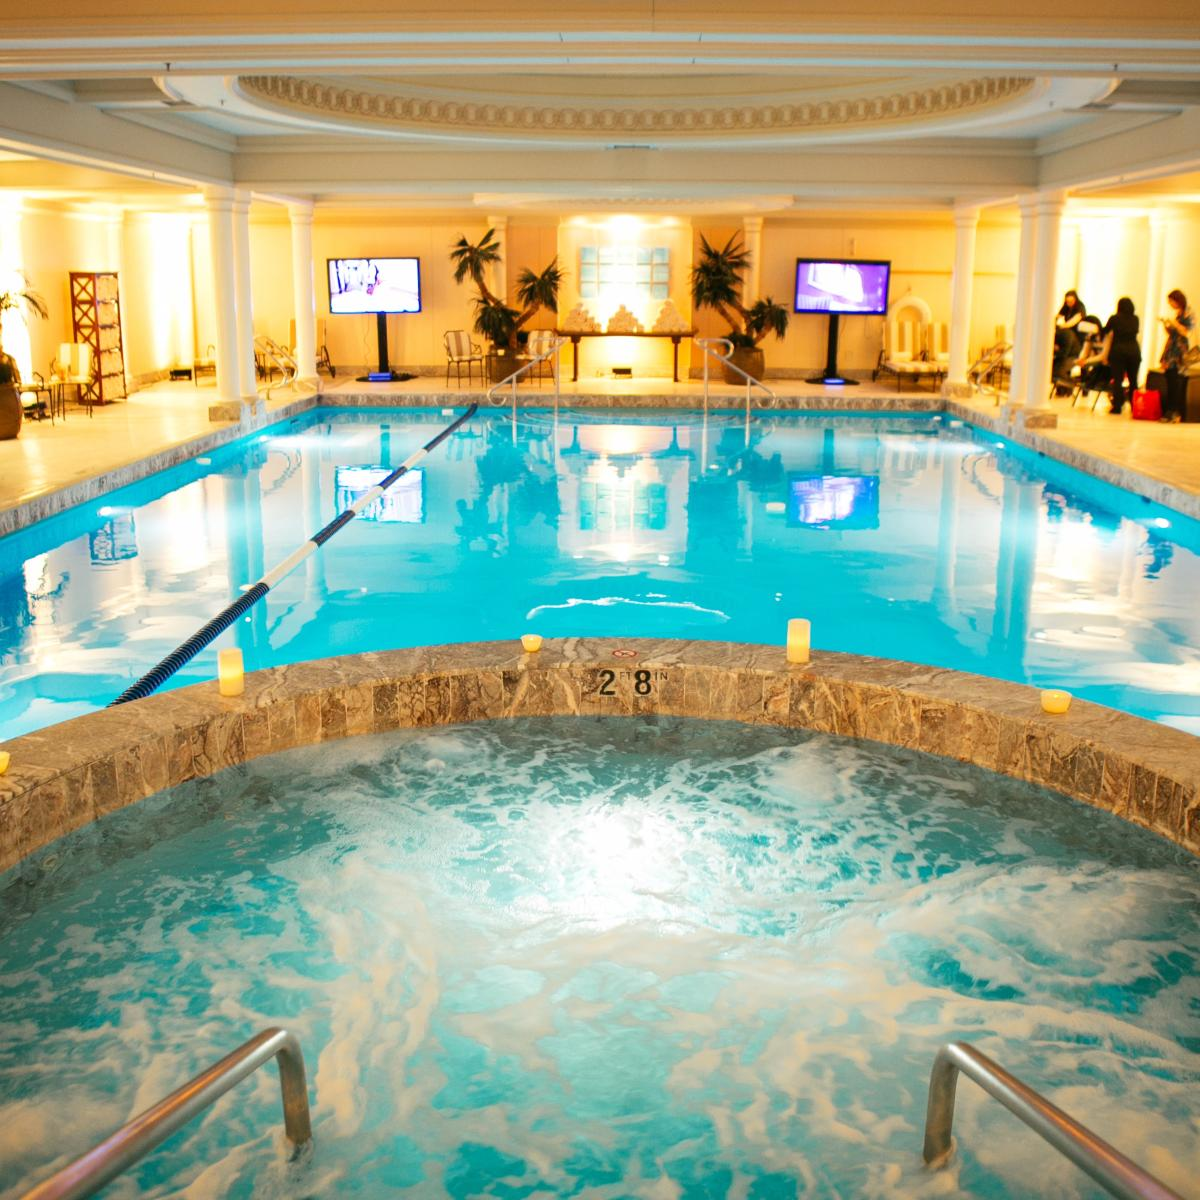 Chicago hotel with pools 5 kid friendly hotel pools for Spa weekend getaway chicago